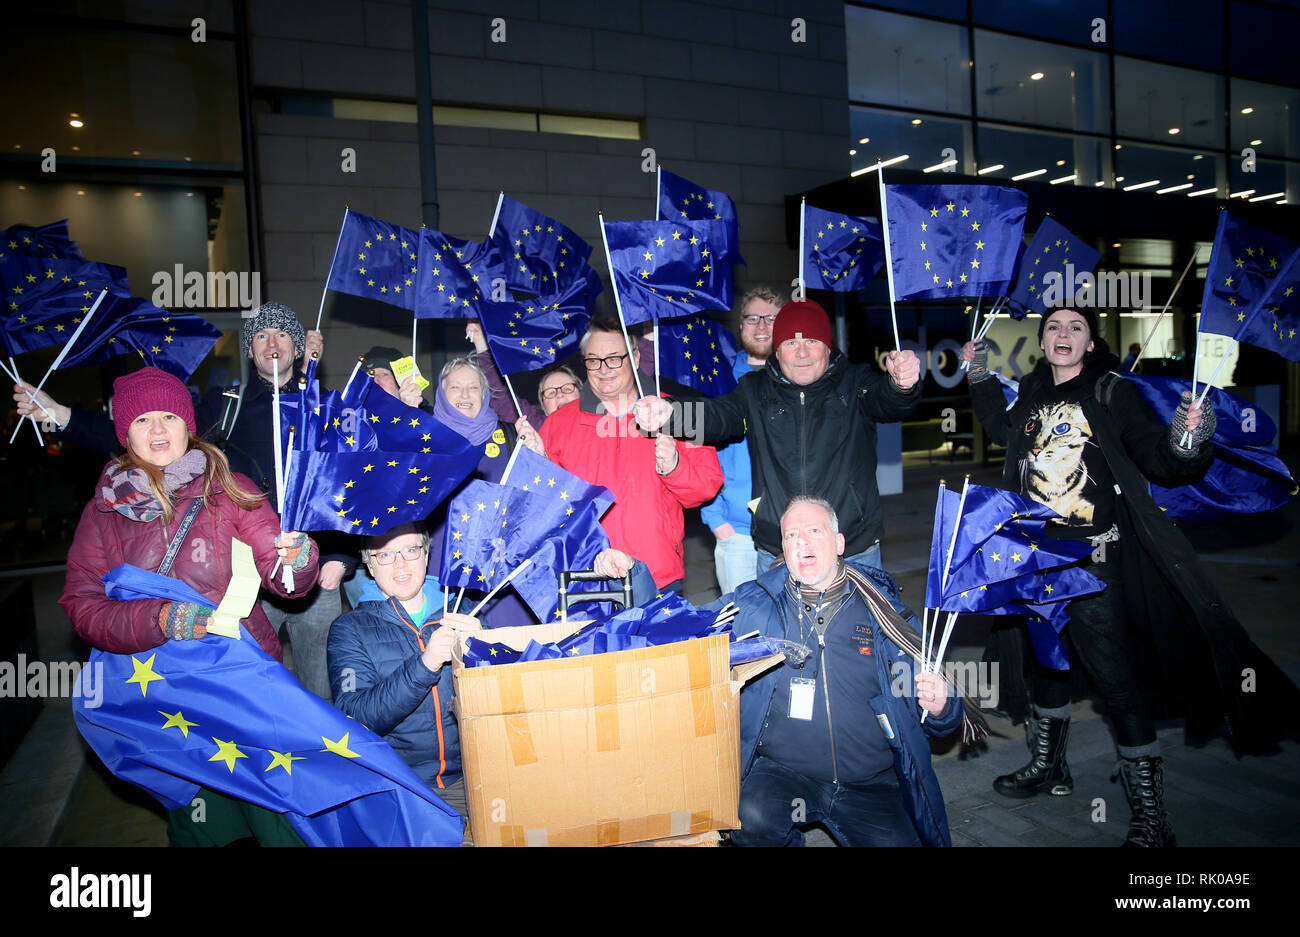 Salford, Greater Manchester, UK. 8th Feb 2019. Pro EU campaigners outside the BBC as the audience gathers for the live filming of 'Eurovision you decide'. European Union flags were removed from people as they entered the BBC studios.    BBC, Media City, Salford, UK, 8th February 2019 Credit: Barbara Cook/Alamy Live News - Stock Image